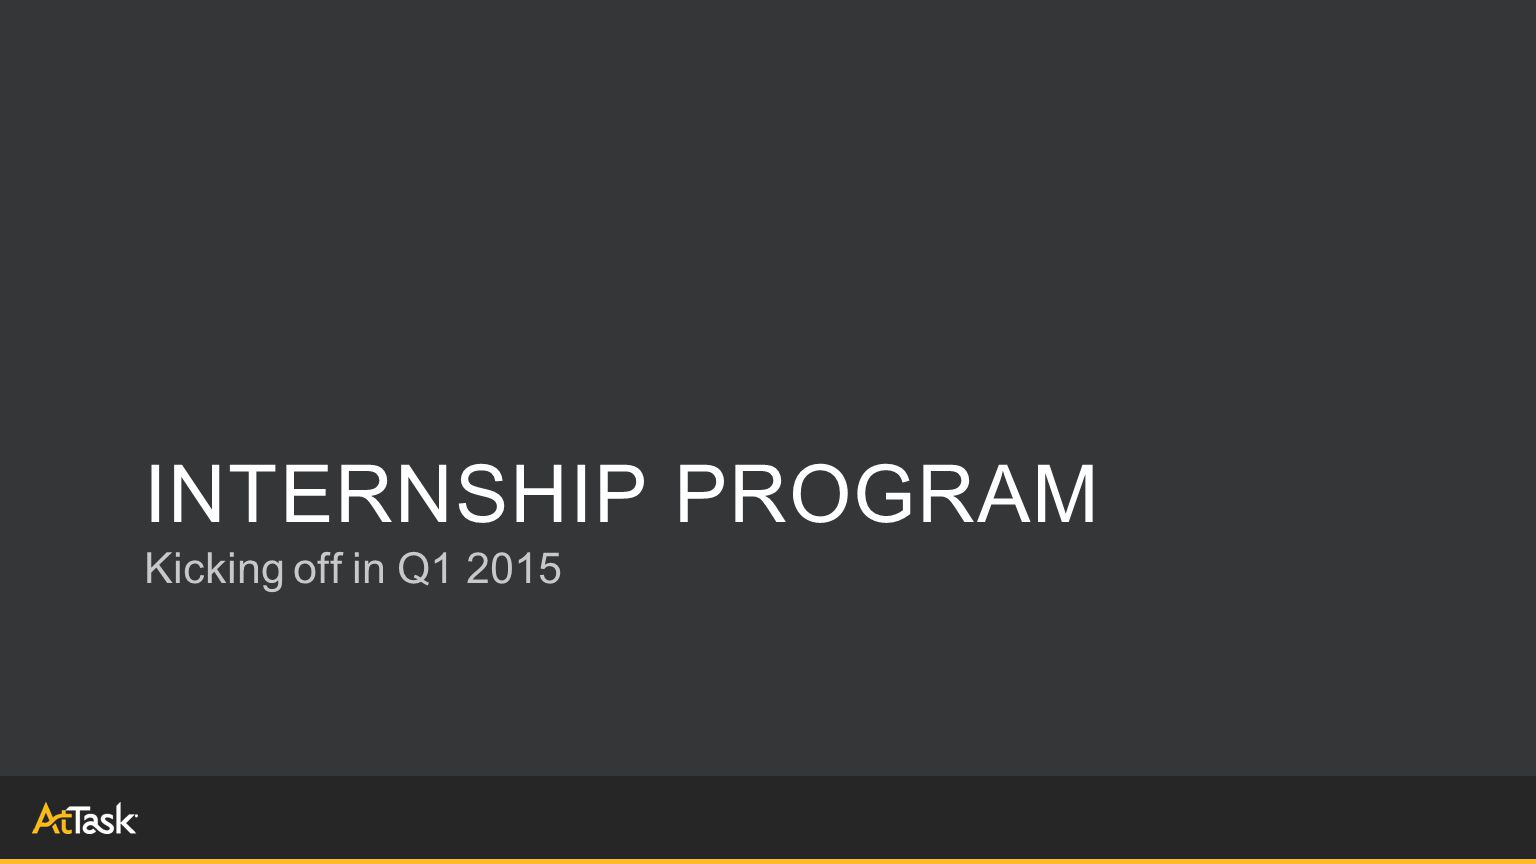 INTERNSHIP PROGRAM Kicking off in Q1 2015